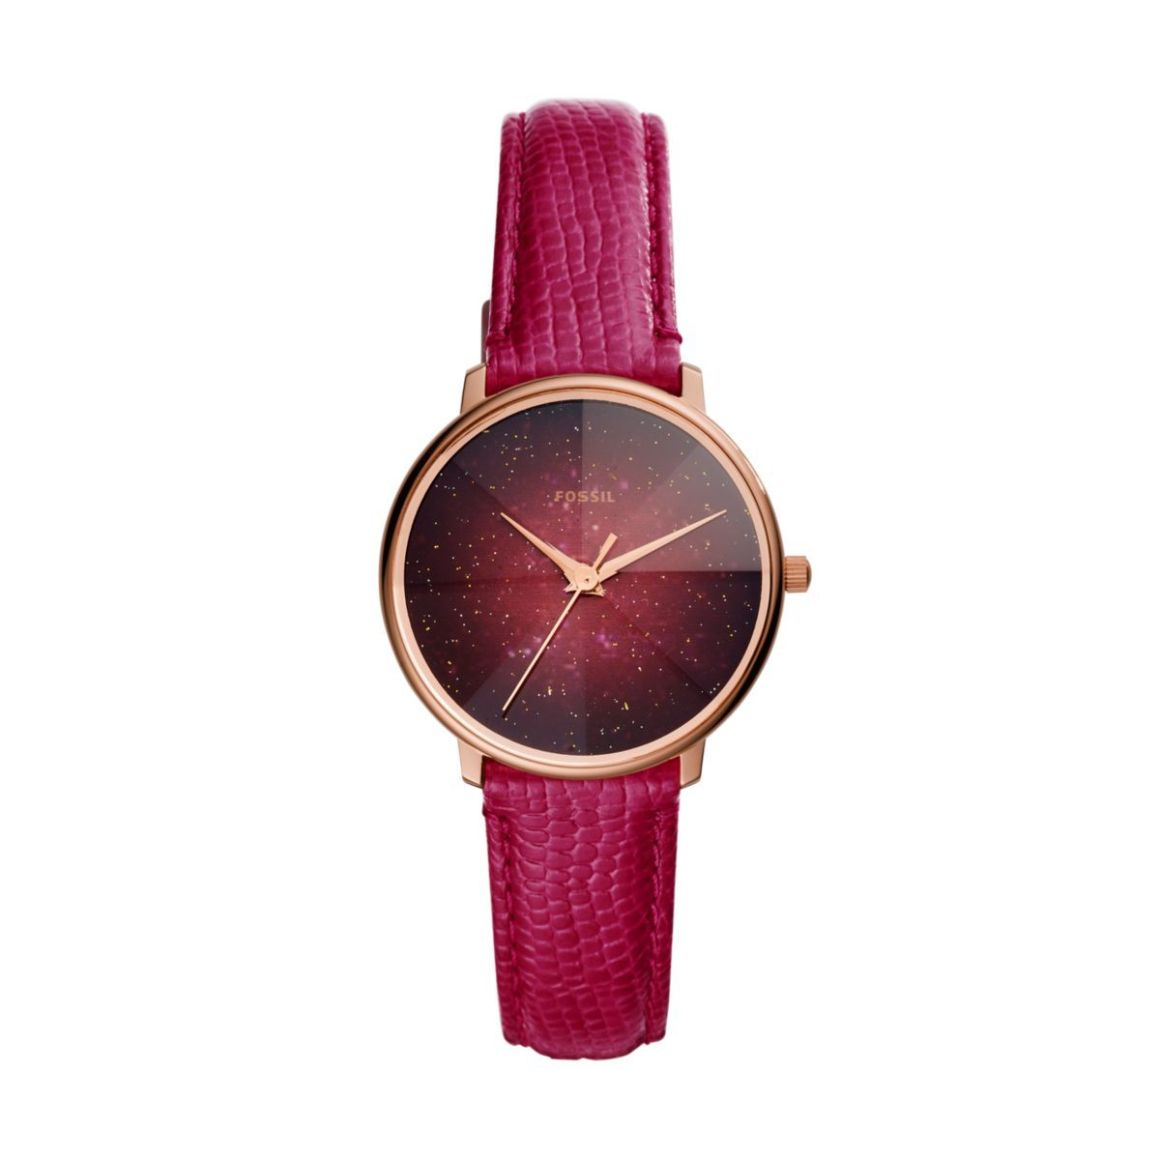 Fossil Women's Prismatic Galaxy Rose Gold Round Leather Watch - ES4731 |  Watch Republic